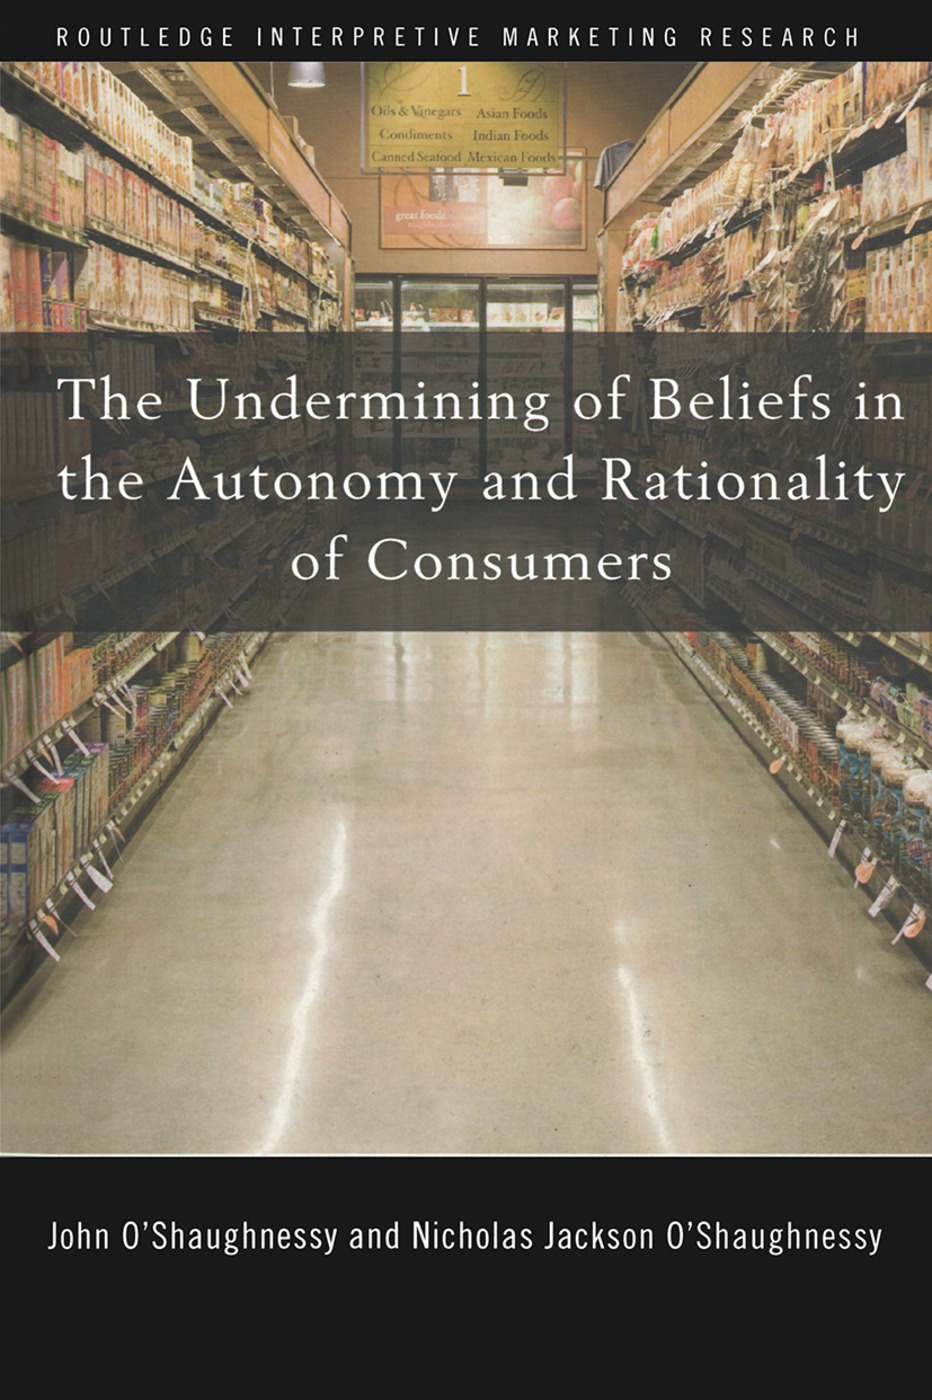 The Undermining of Beliefs in the Autonomy and Rationality of Consumers book cover